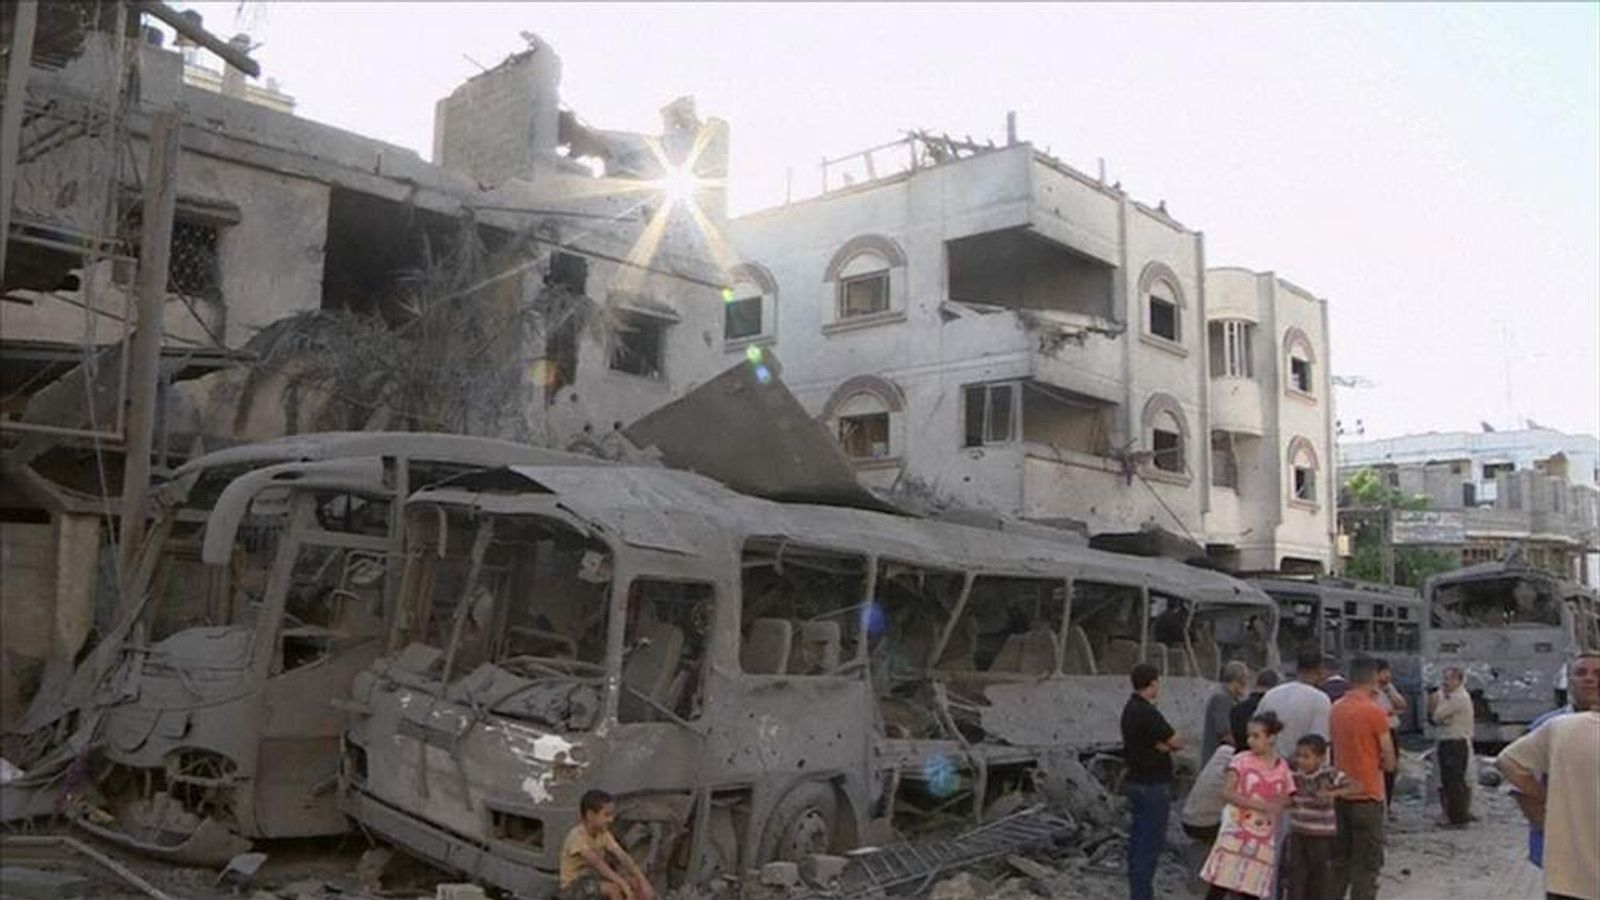 The aftermath of an airstrike in Gaza that targeted Hamas military chief Mohamed Deif.